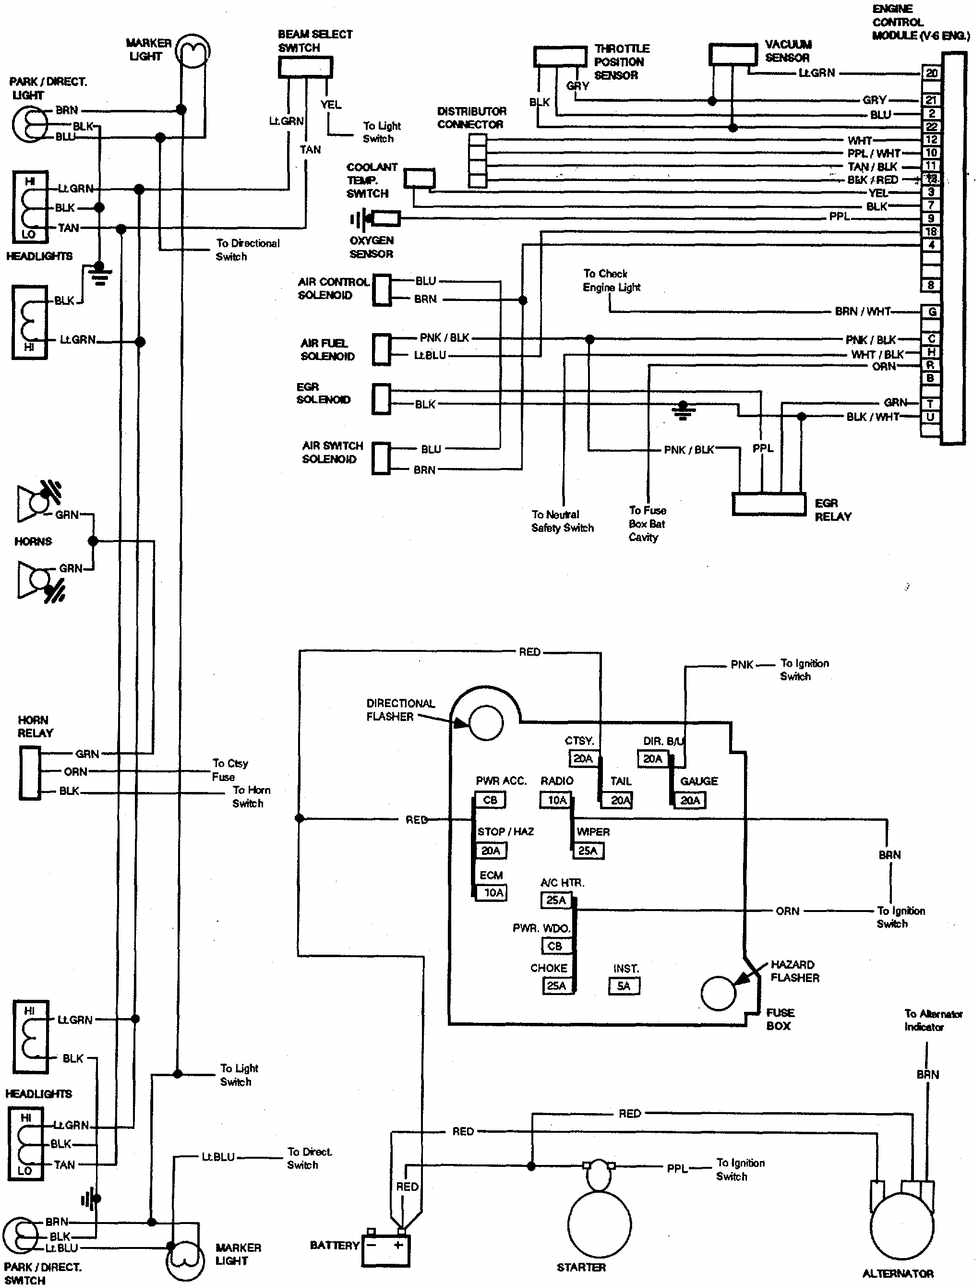 Chevrolet V8 Trucks 1981 1987 on 1996 monte carlo wiring diagram